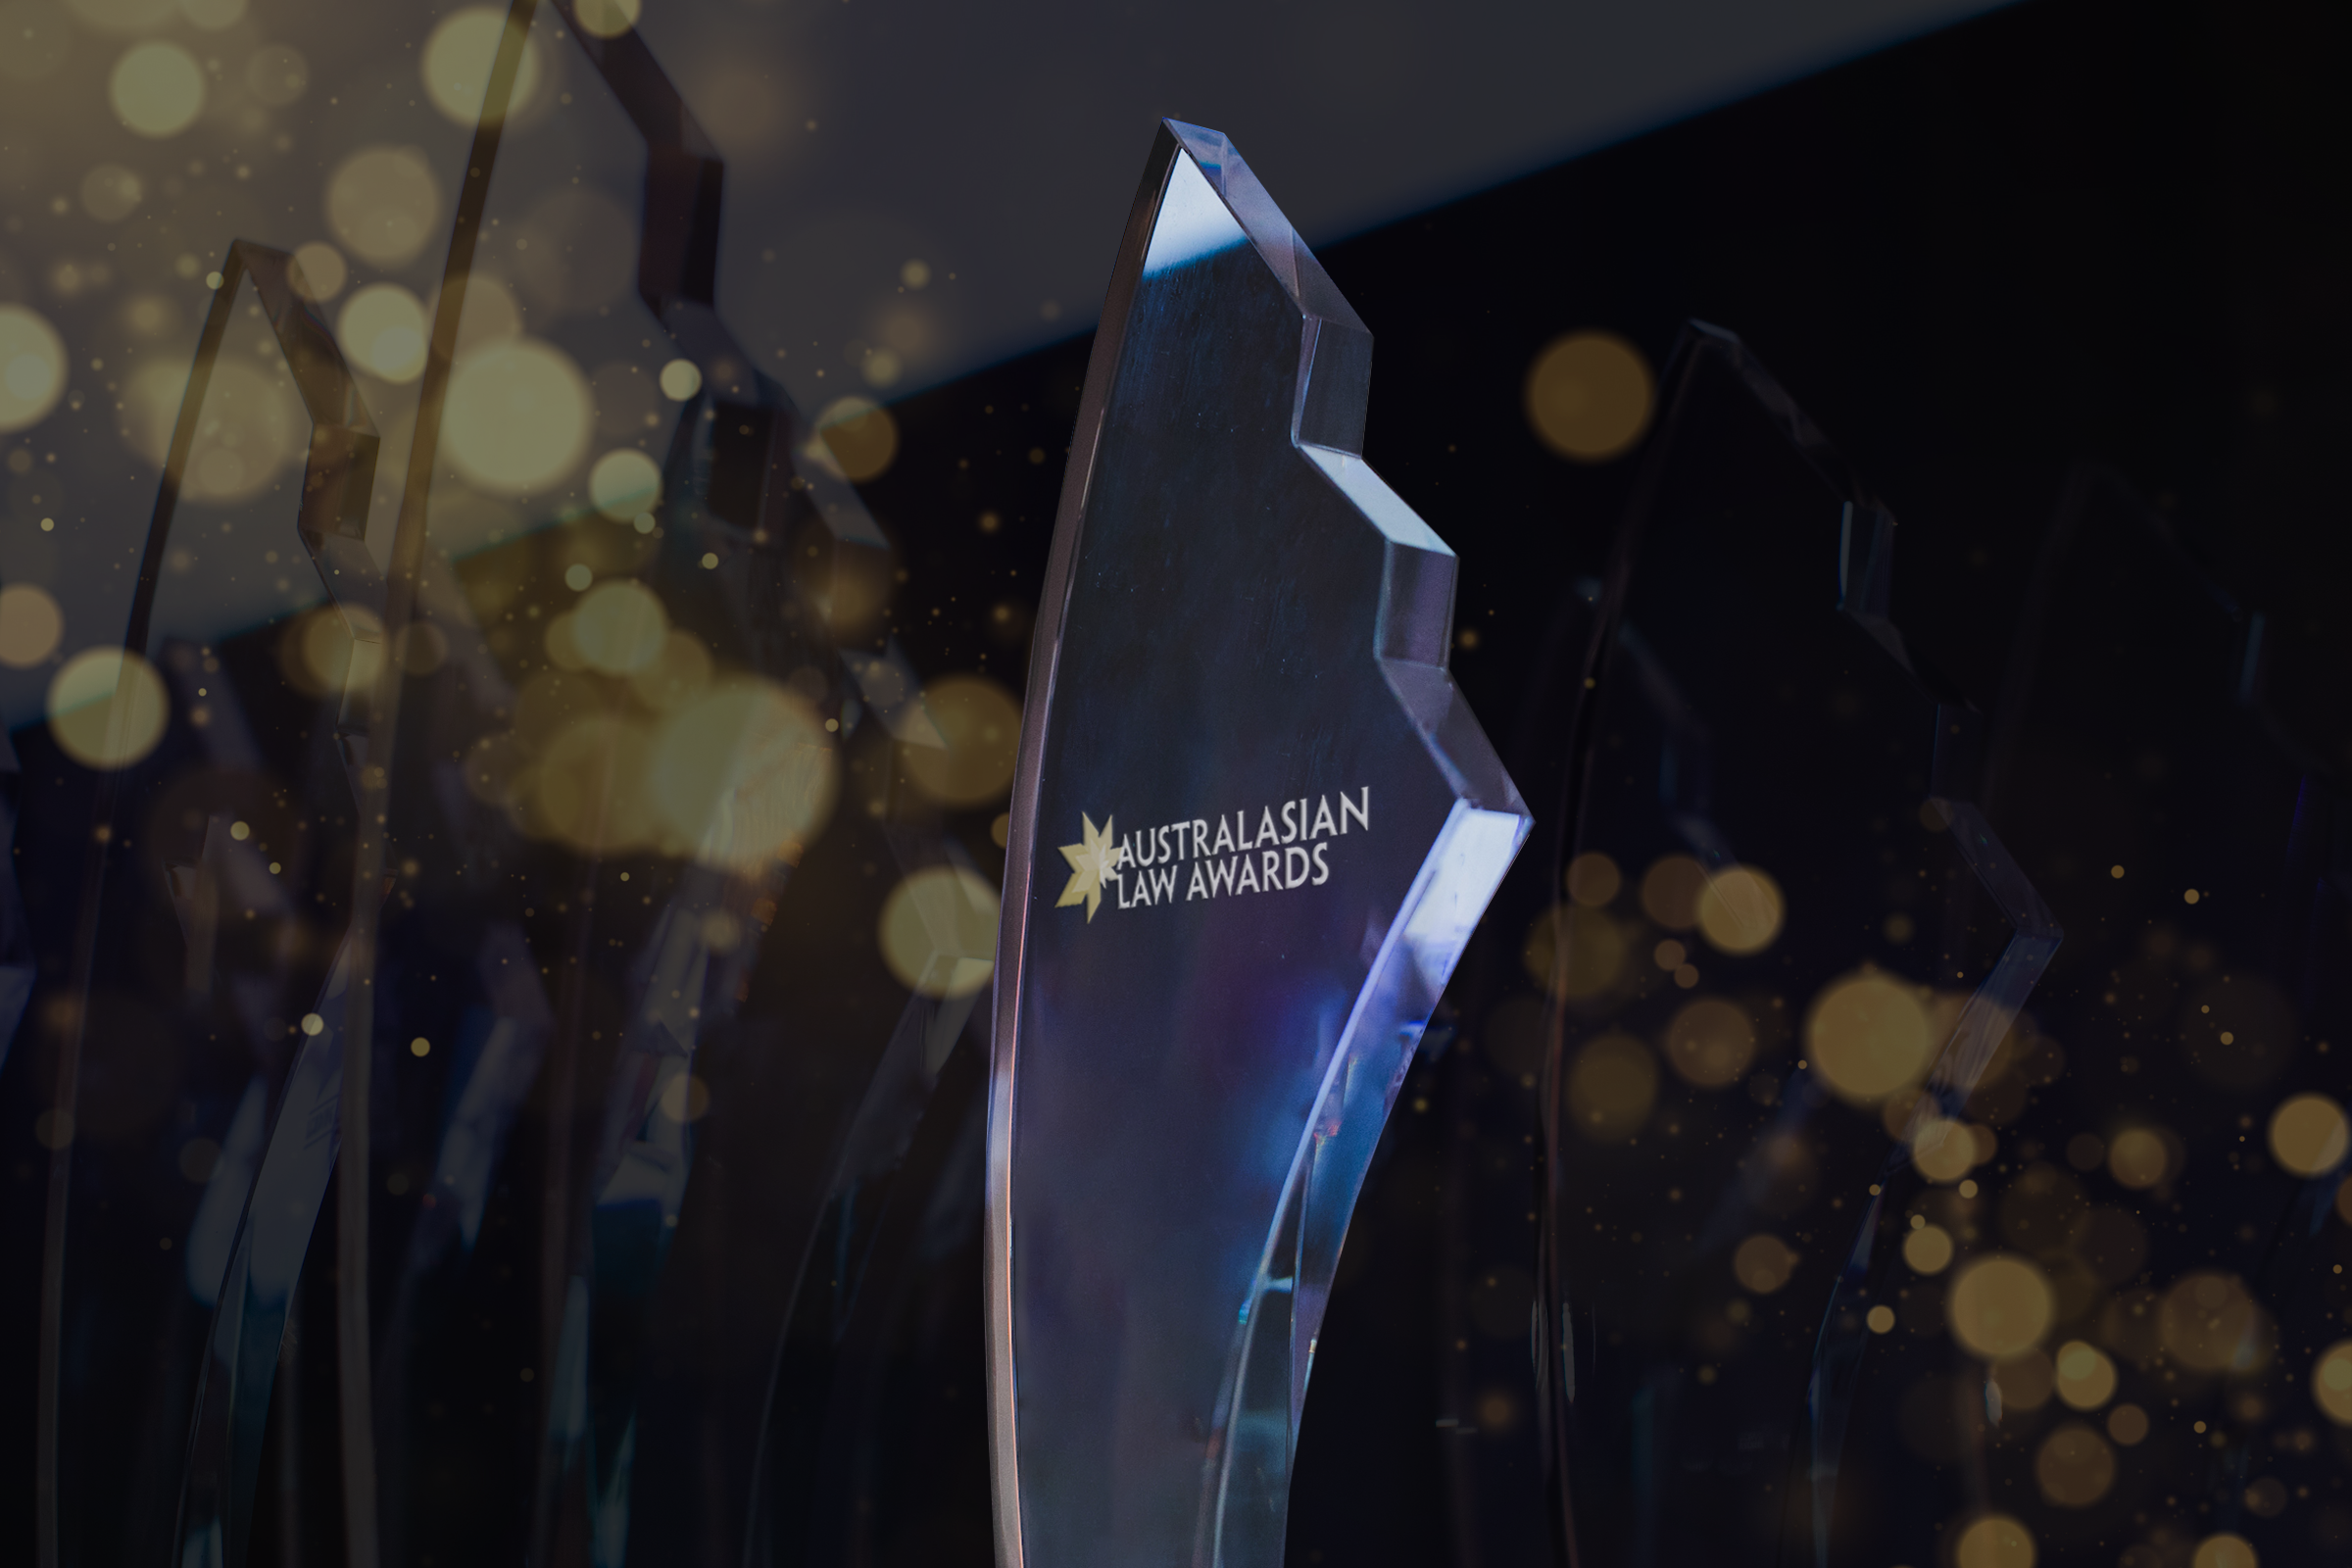 Australasian Law Awards 2021 crowns the winners of the deal categories